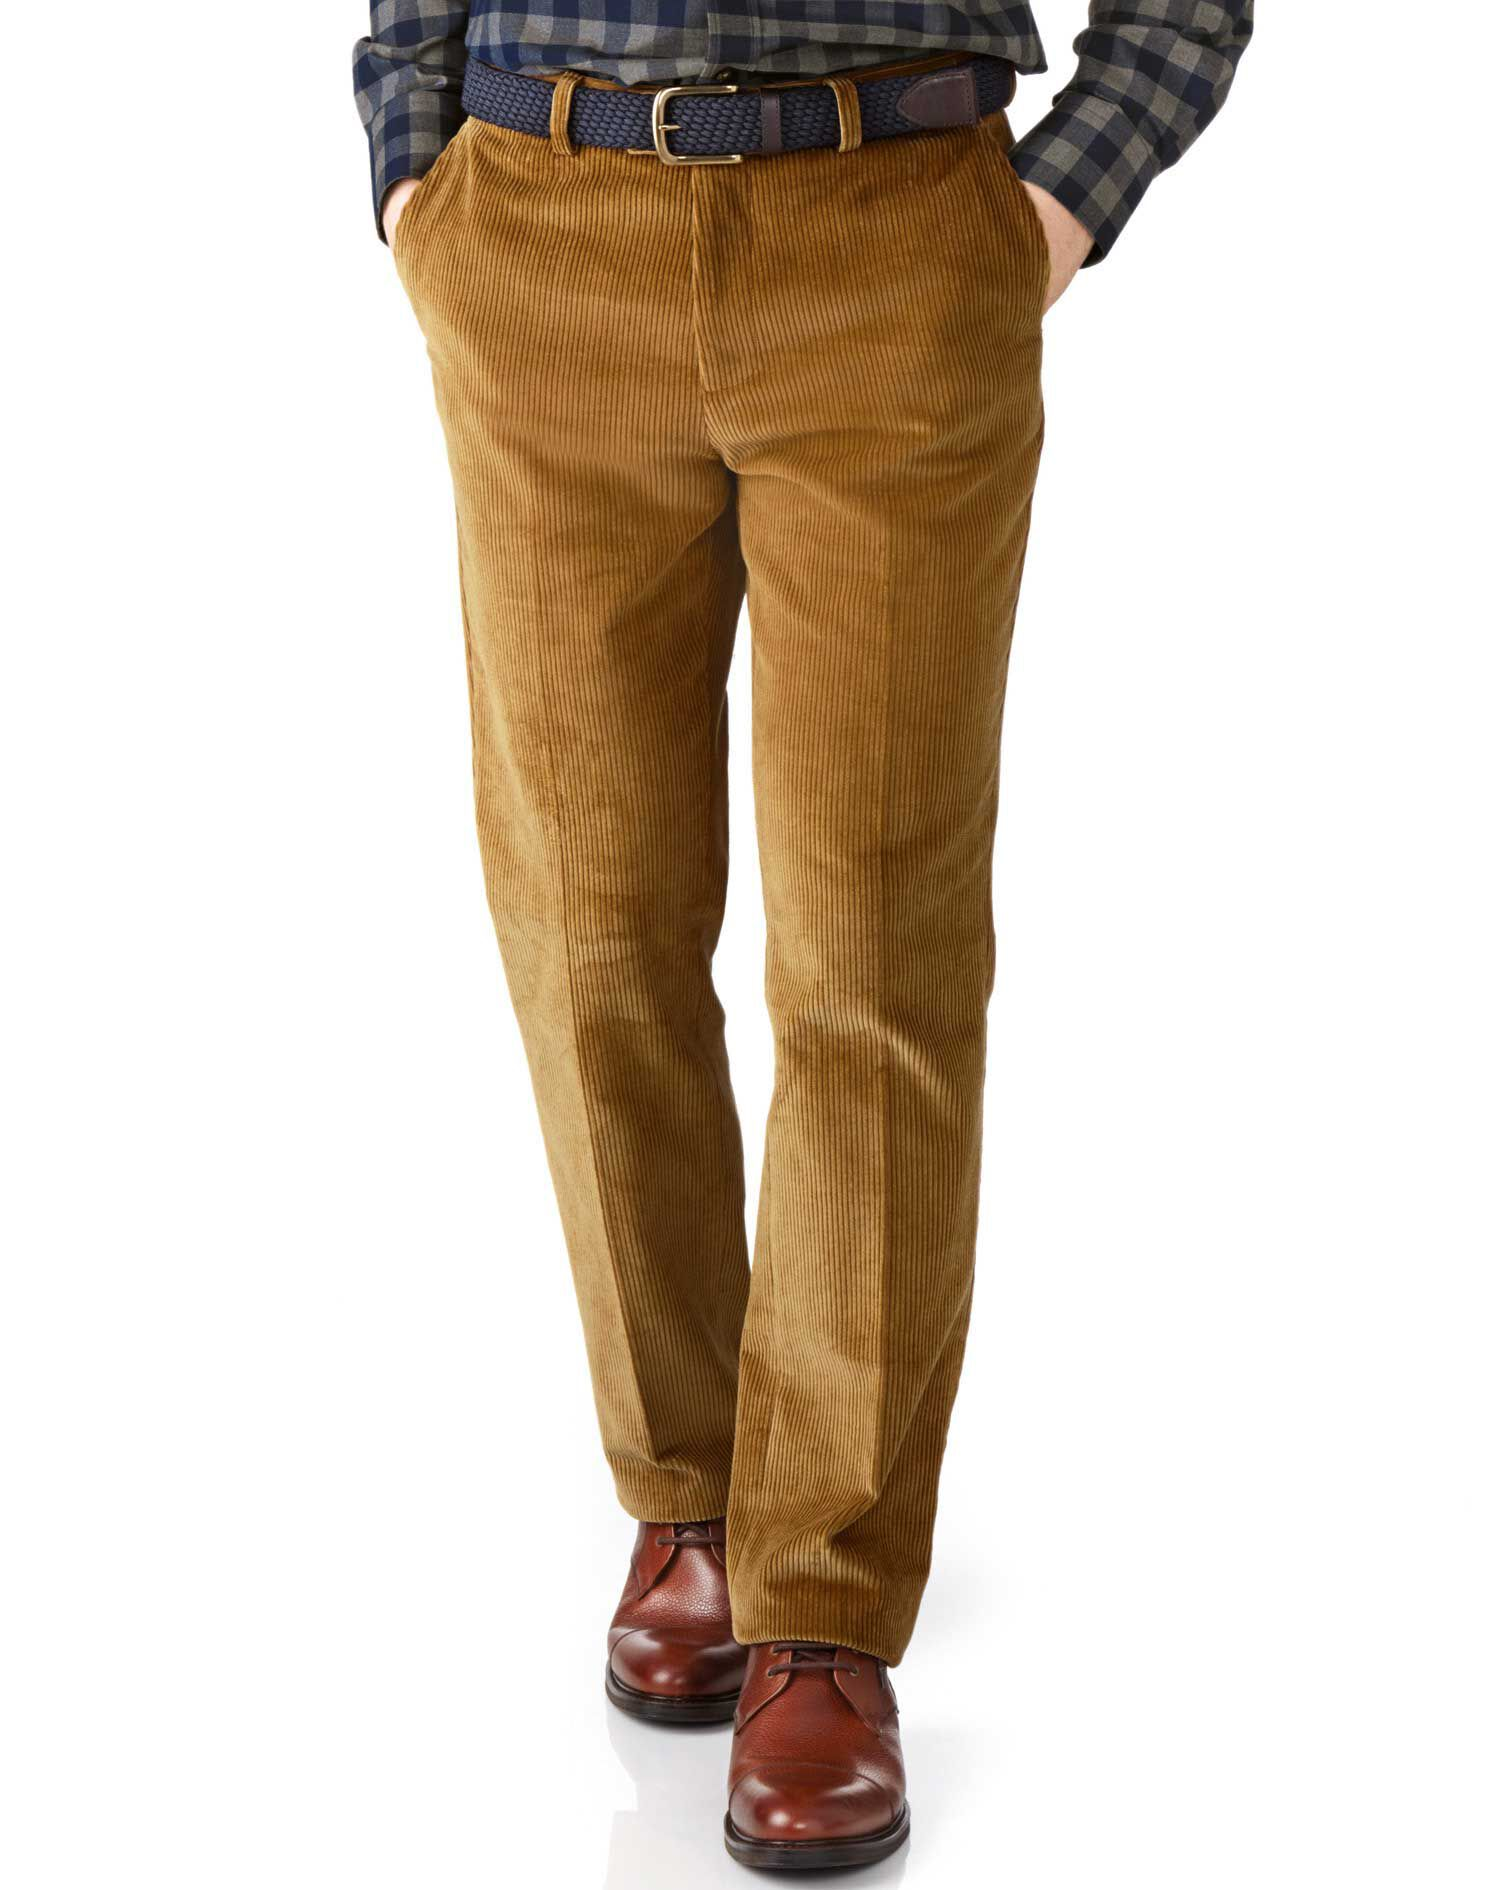 Yellow Slim Fit Jumbo Cord Trousers Size W30 L34 by Charles Tyrwhitt